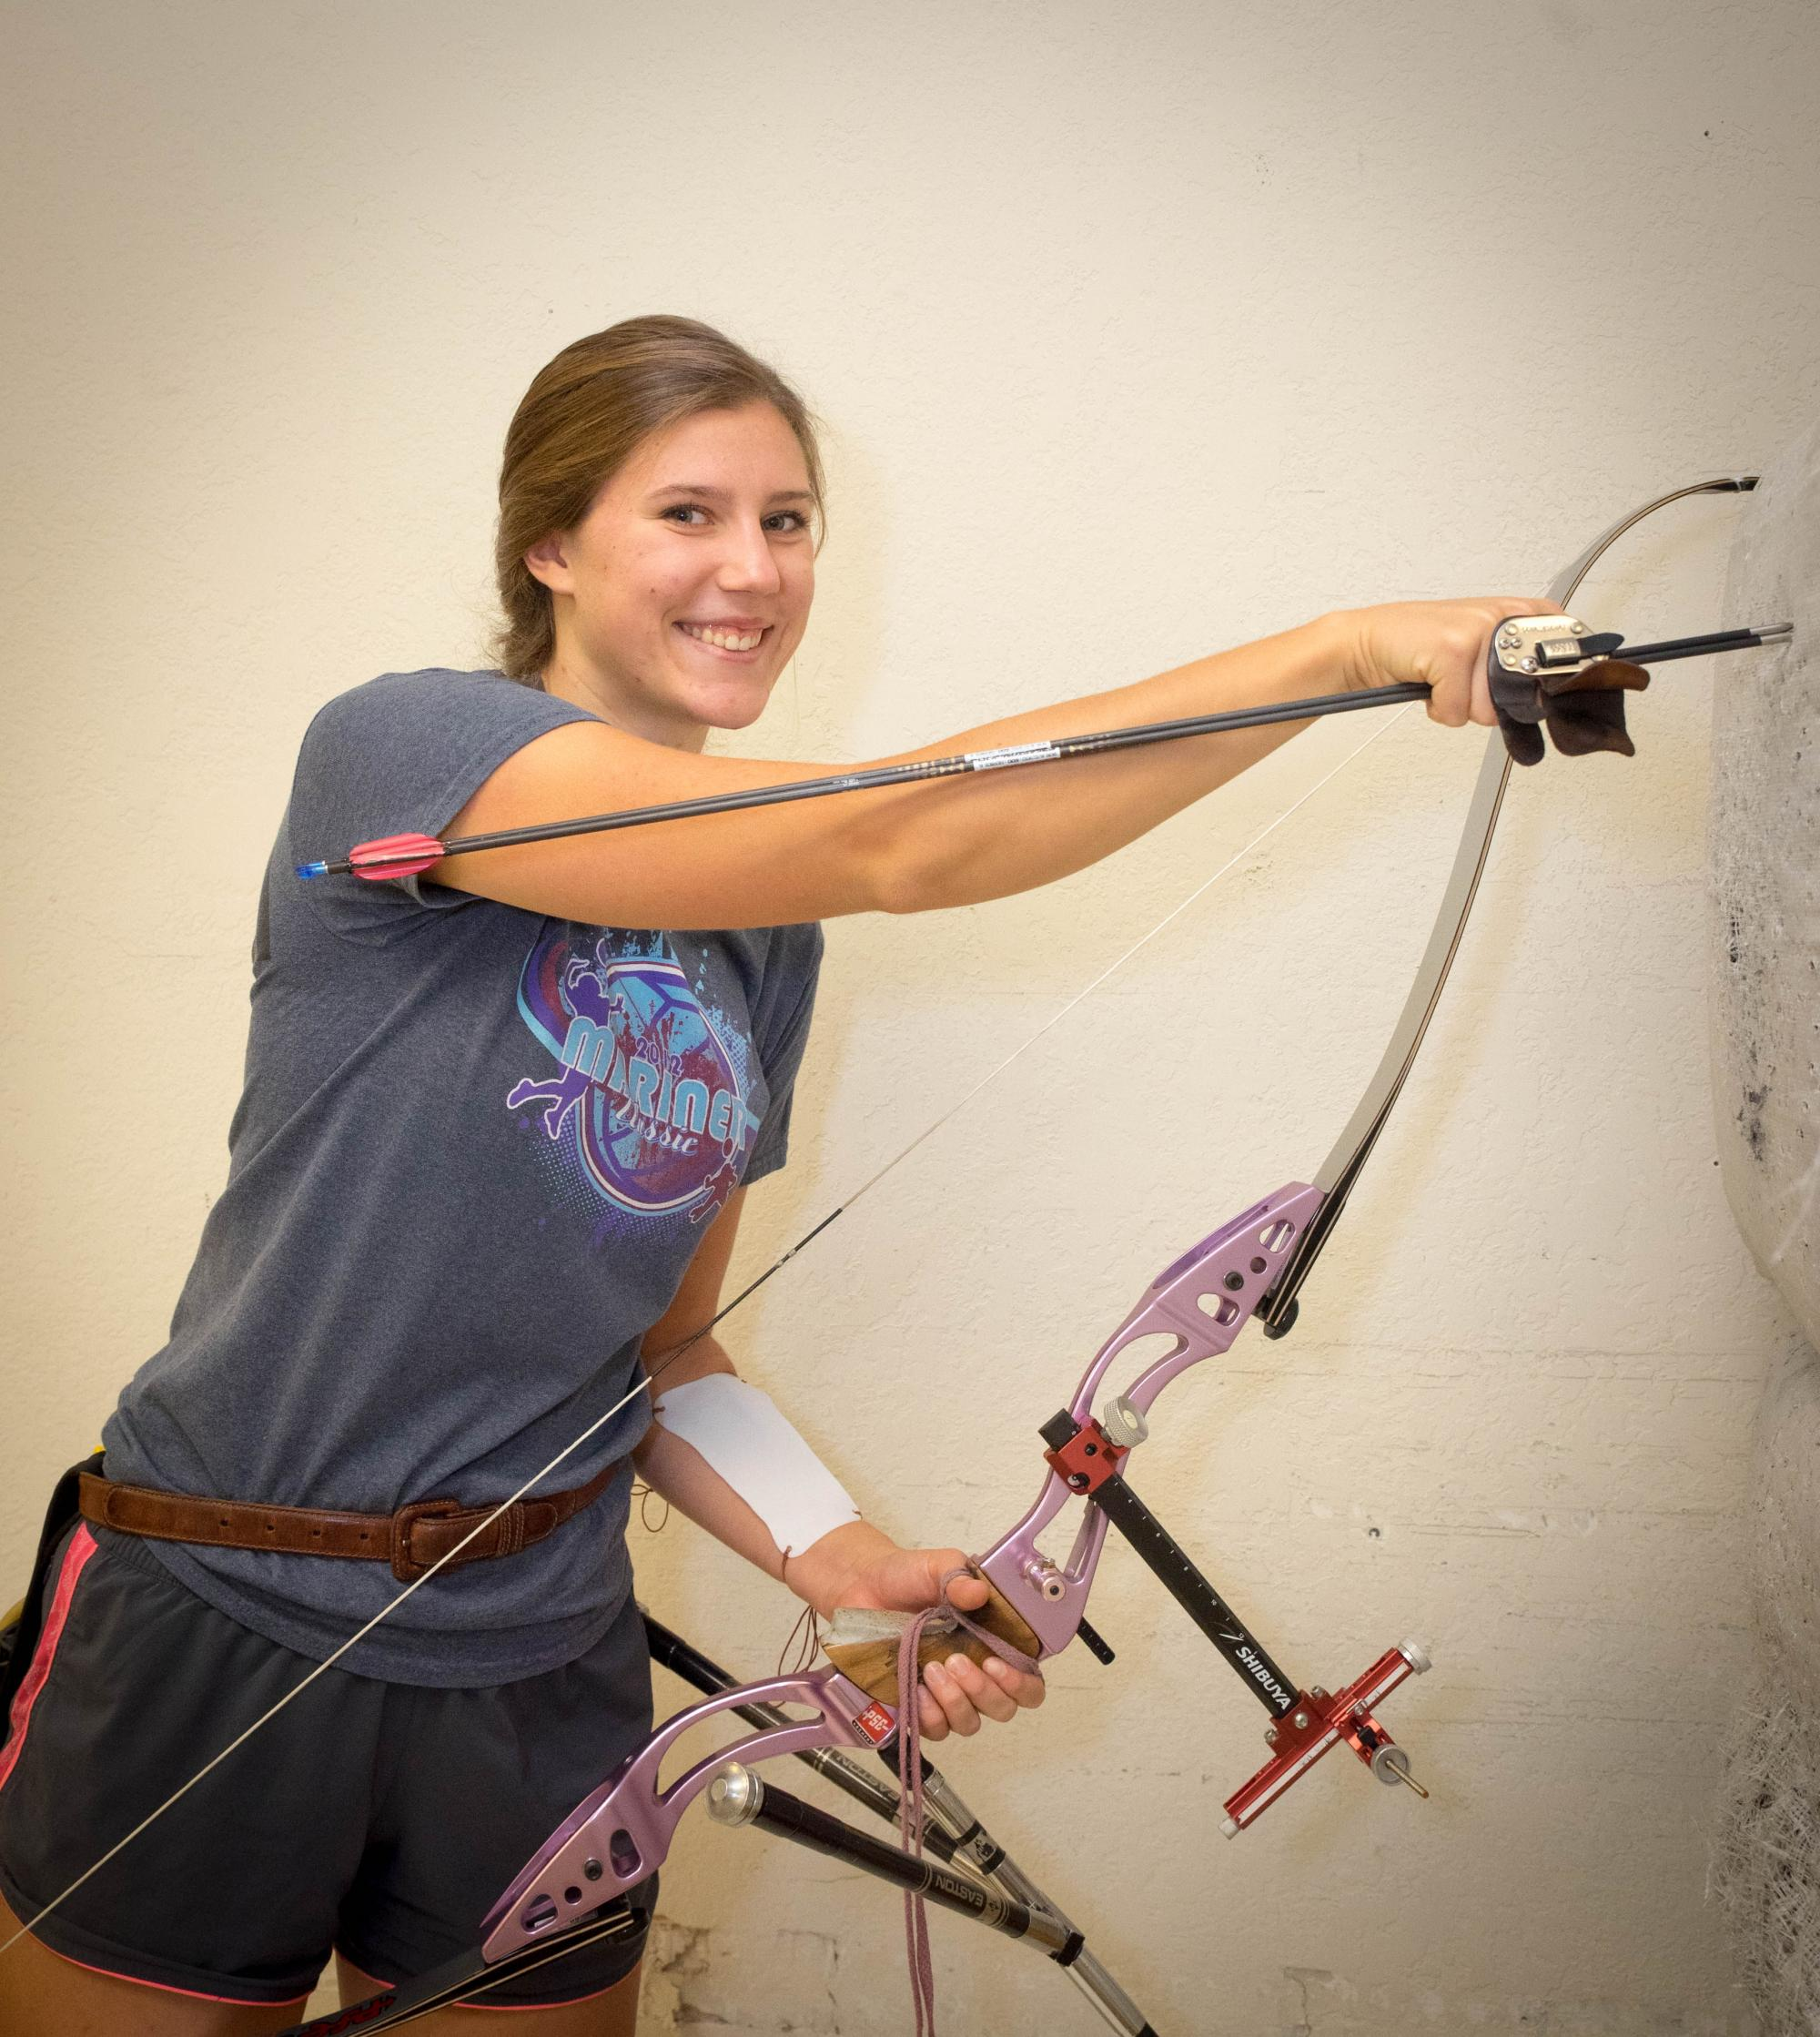 Club member Madison Eich, a student in the College of Engineering, enjoys a Saturday morning at the range.